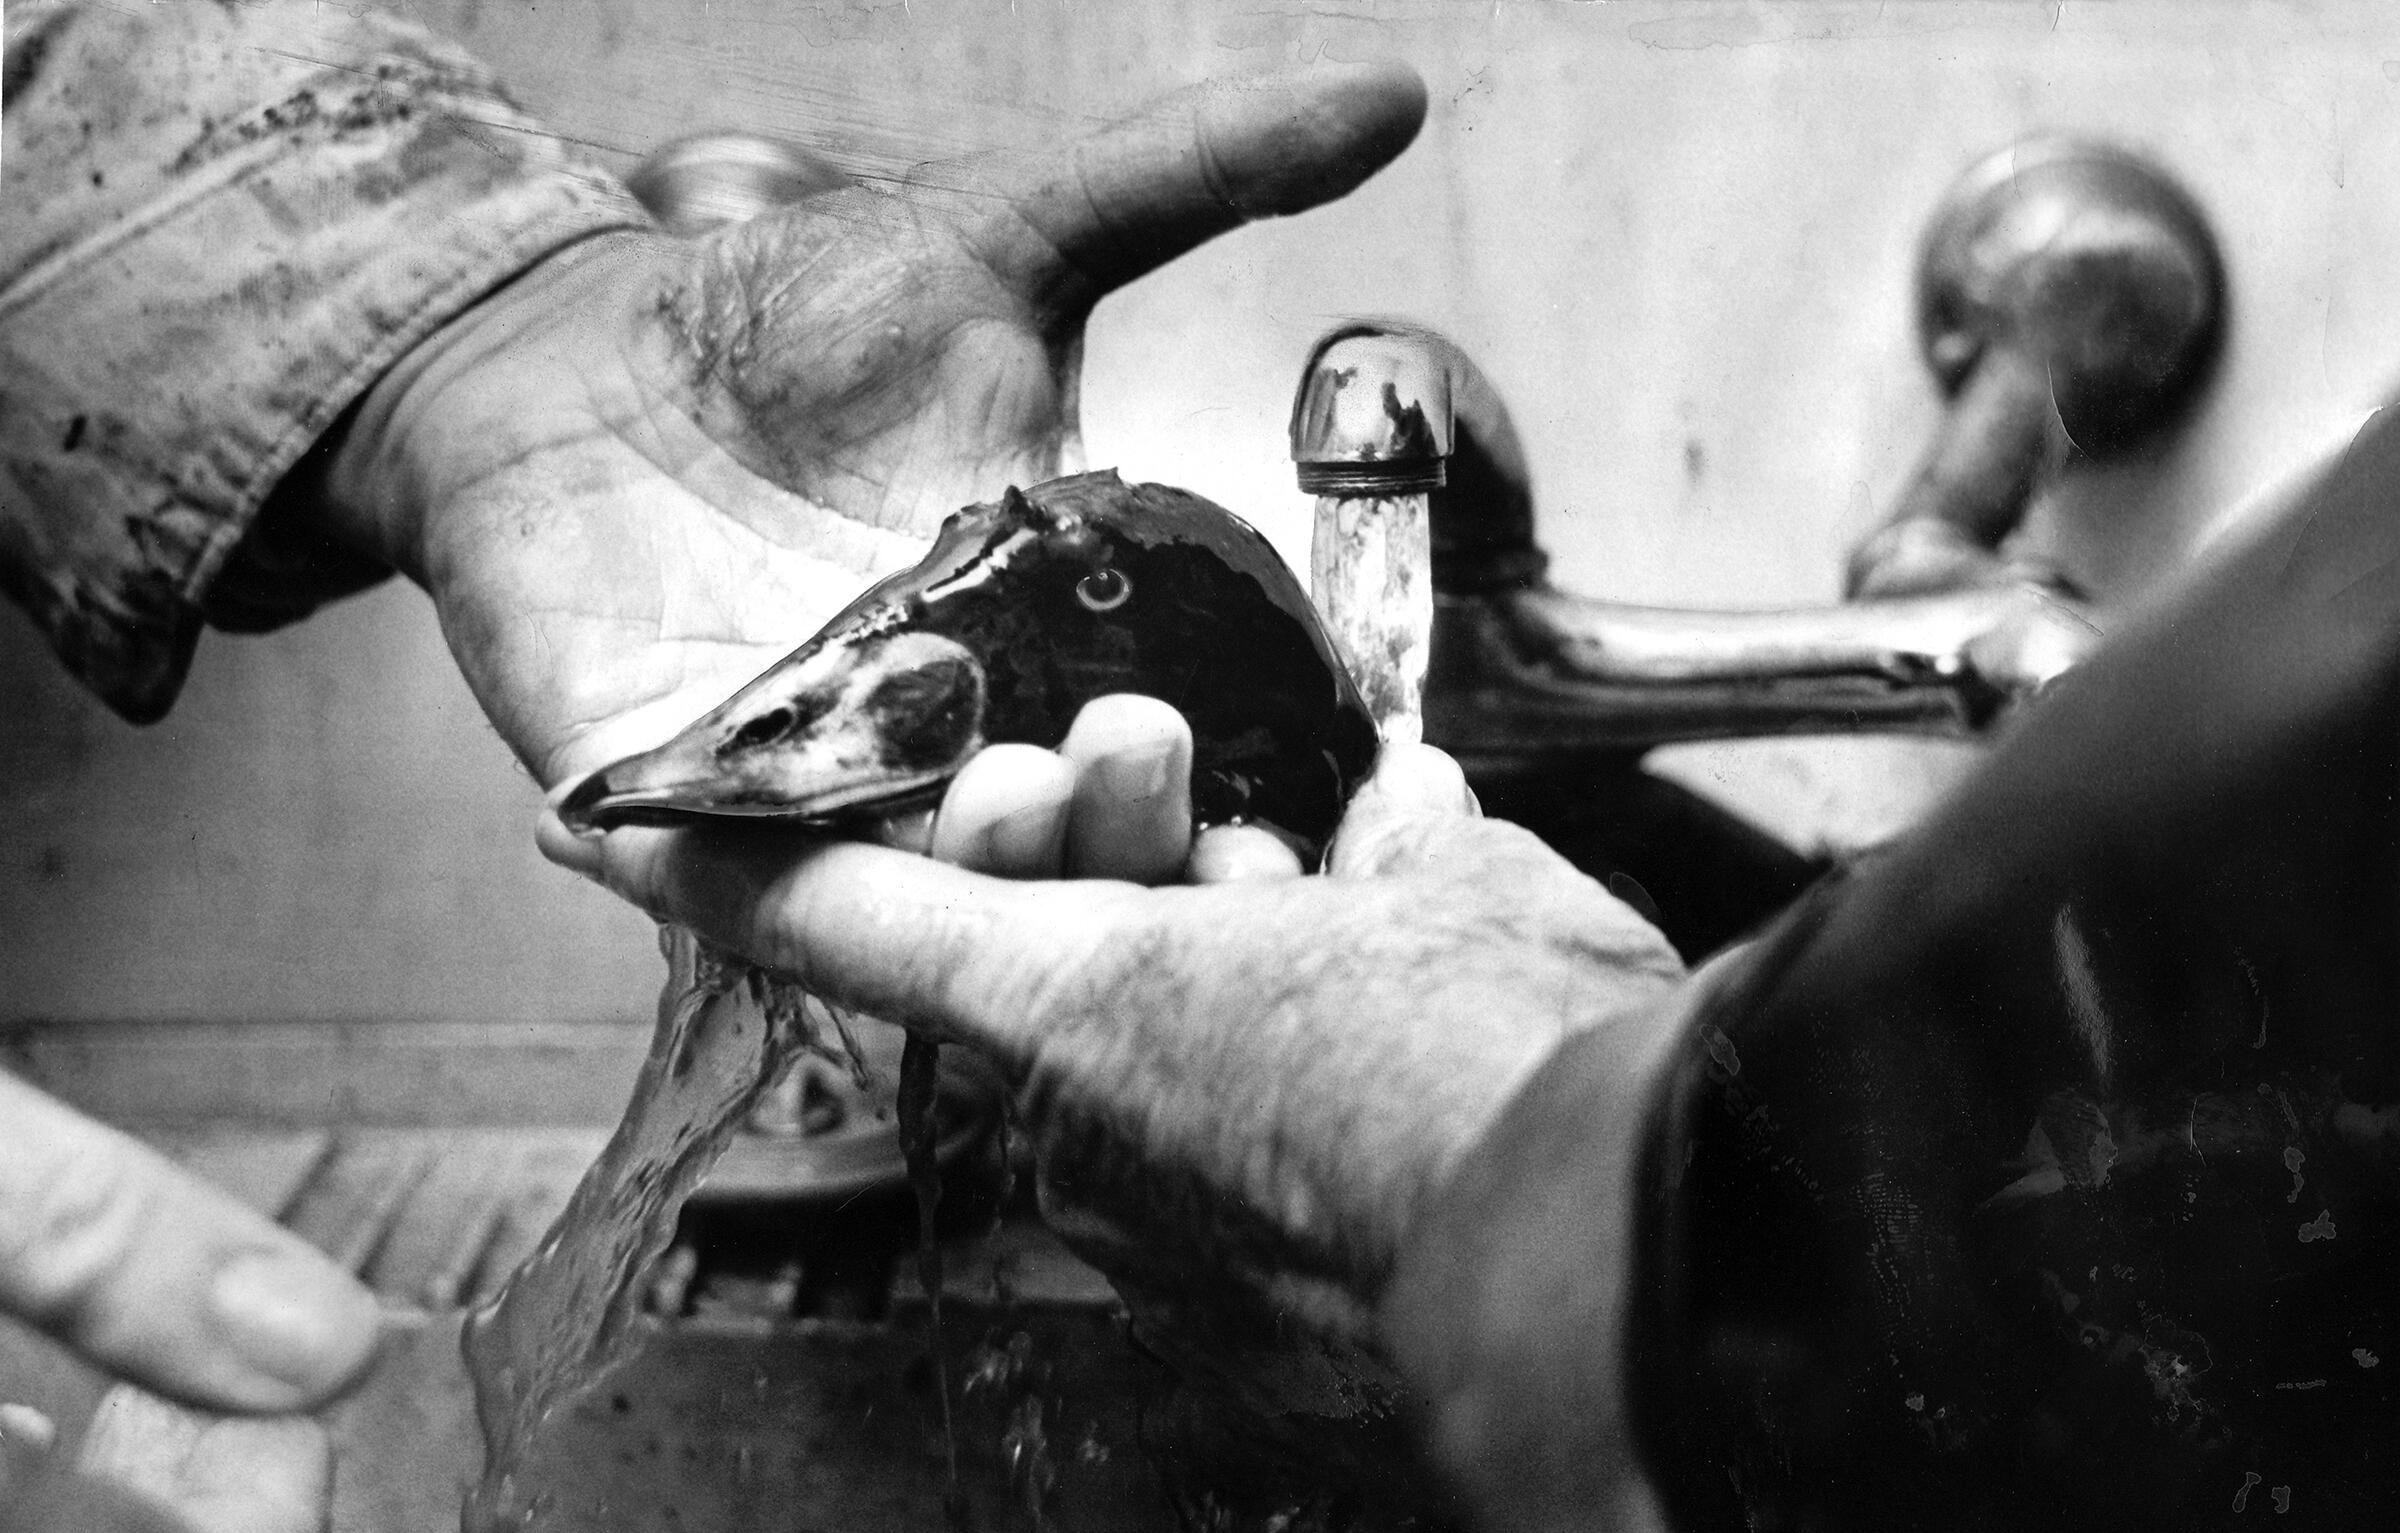 An oil-soaked Surf Scoter gets a washing after the 1969 spill. The spill was the largest to date in the U.S., and many modern cleanup methods were still unknown. © 2015 Los Angeles Times. Used with Permission.